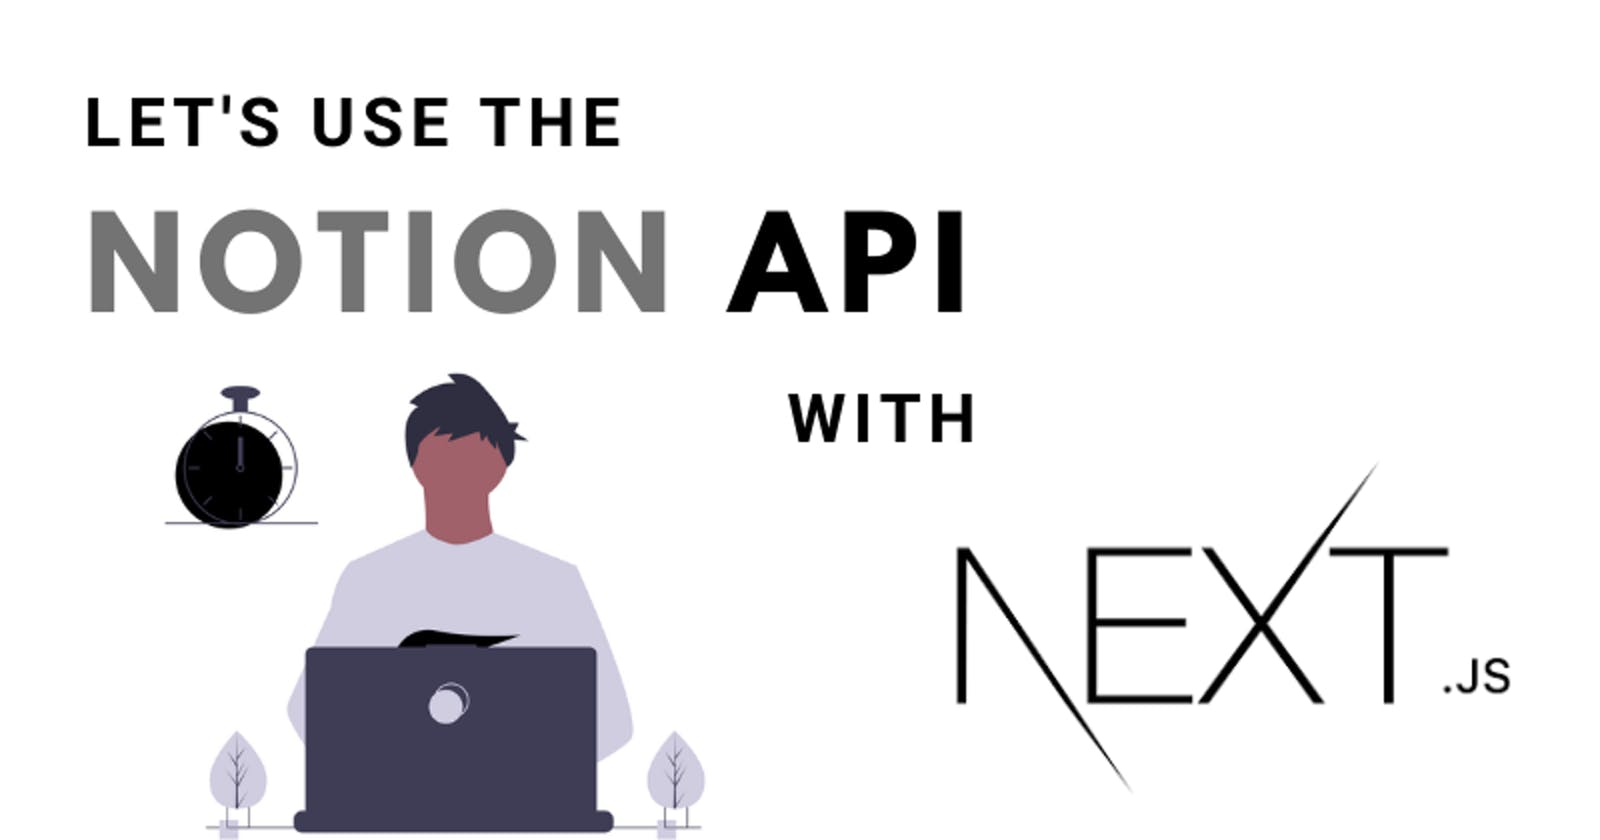 How to use Notion API with NextJS?